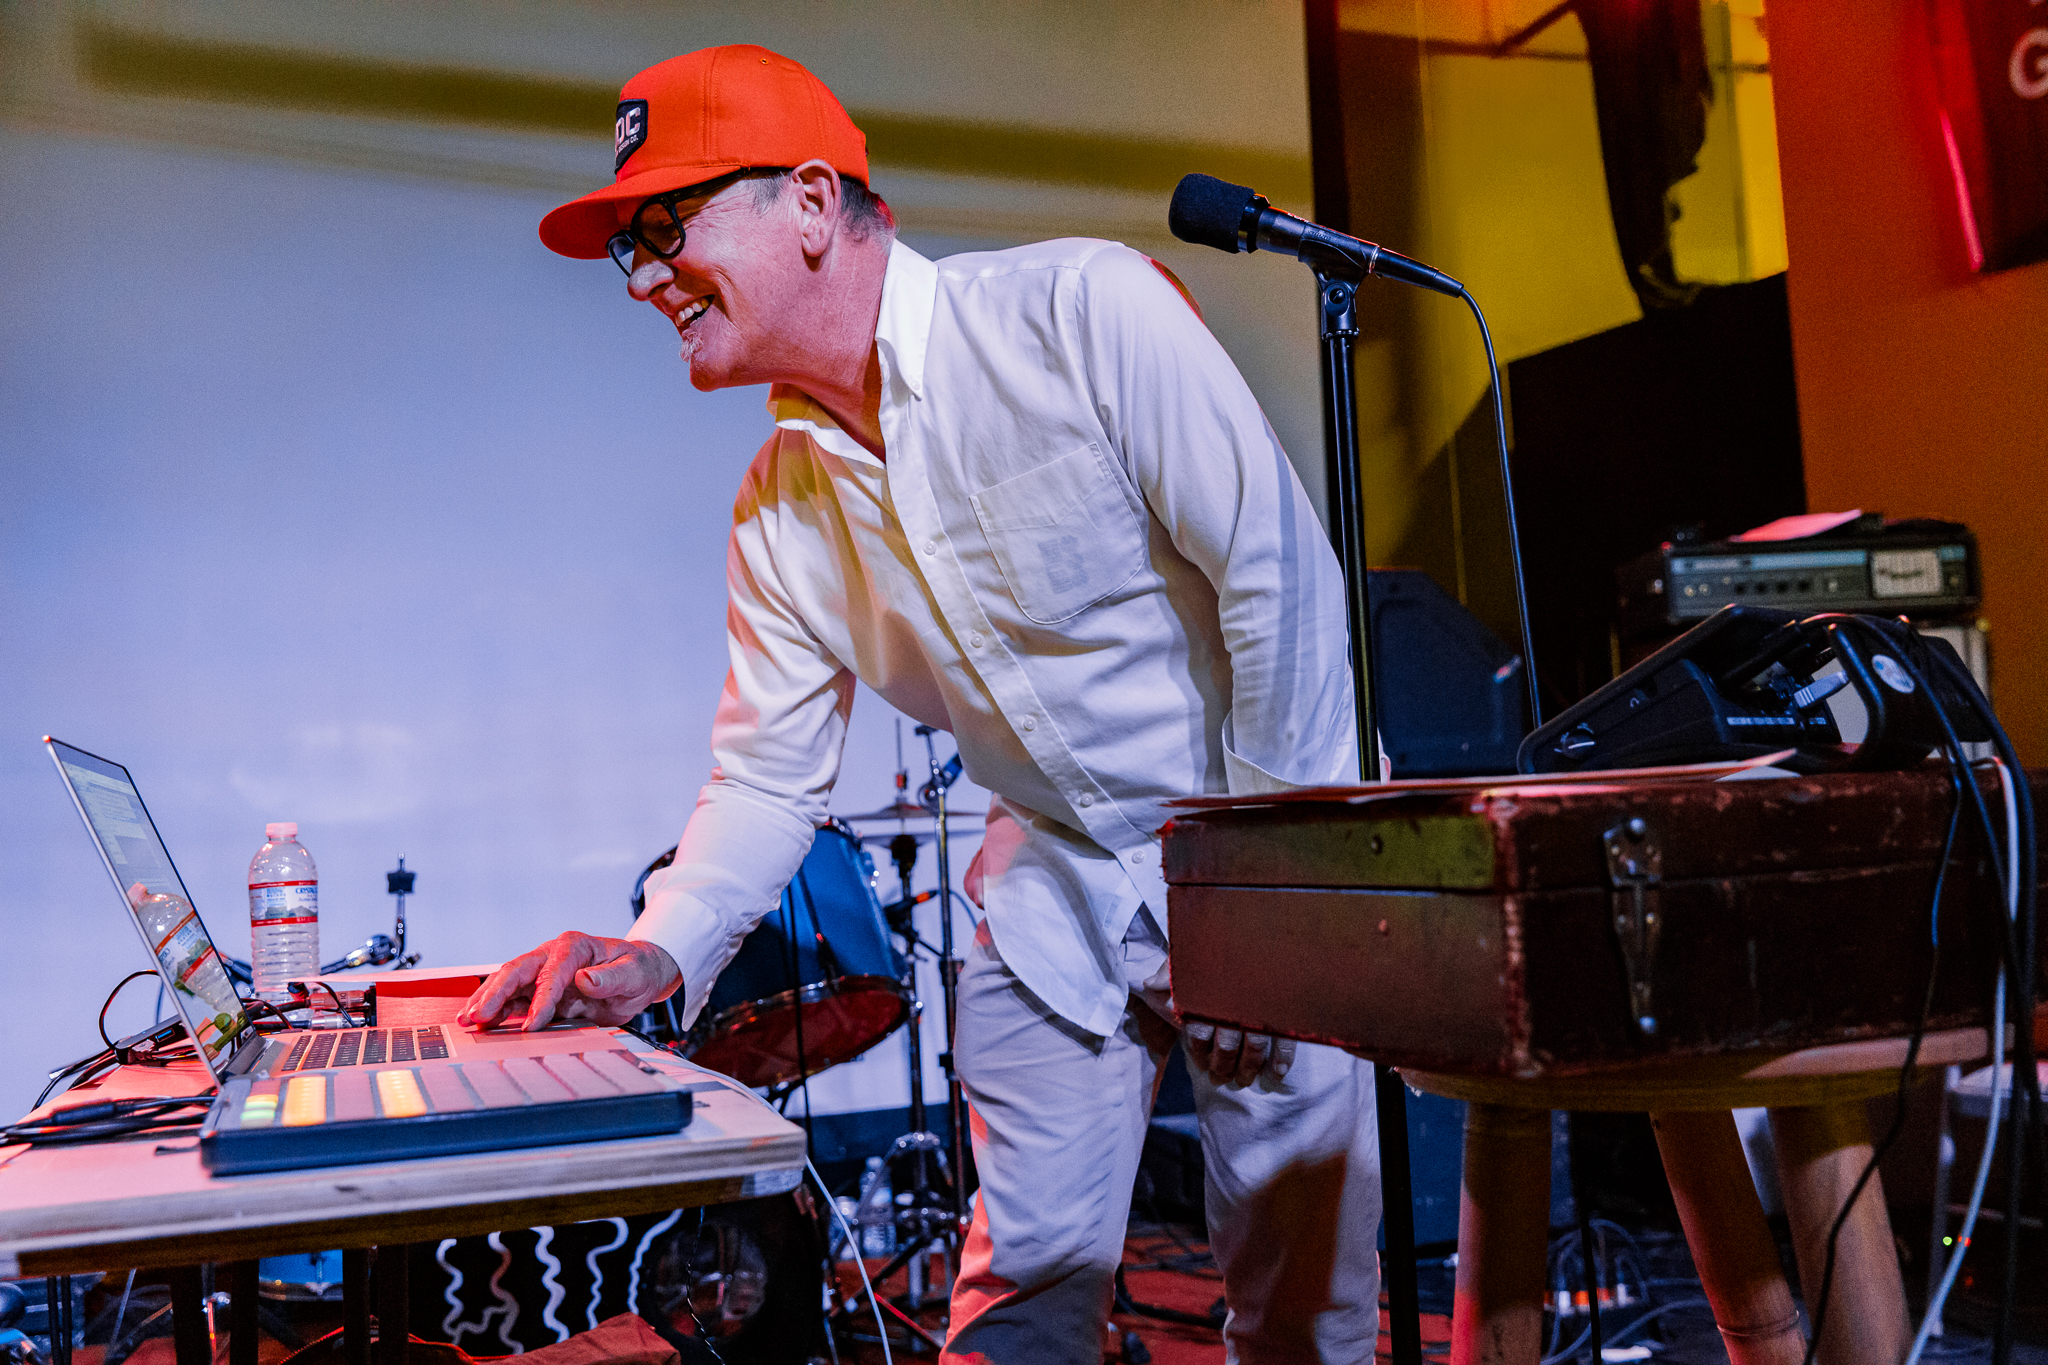 Repressed performing at Hopscotch Music Festival 2017 in Raleigh, NC - 9/8/2017 (photo by Matt Condon / @arcane93)